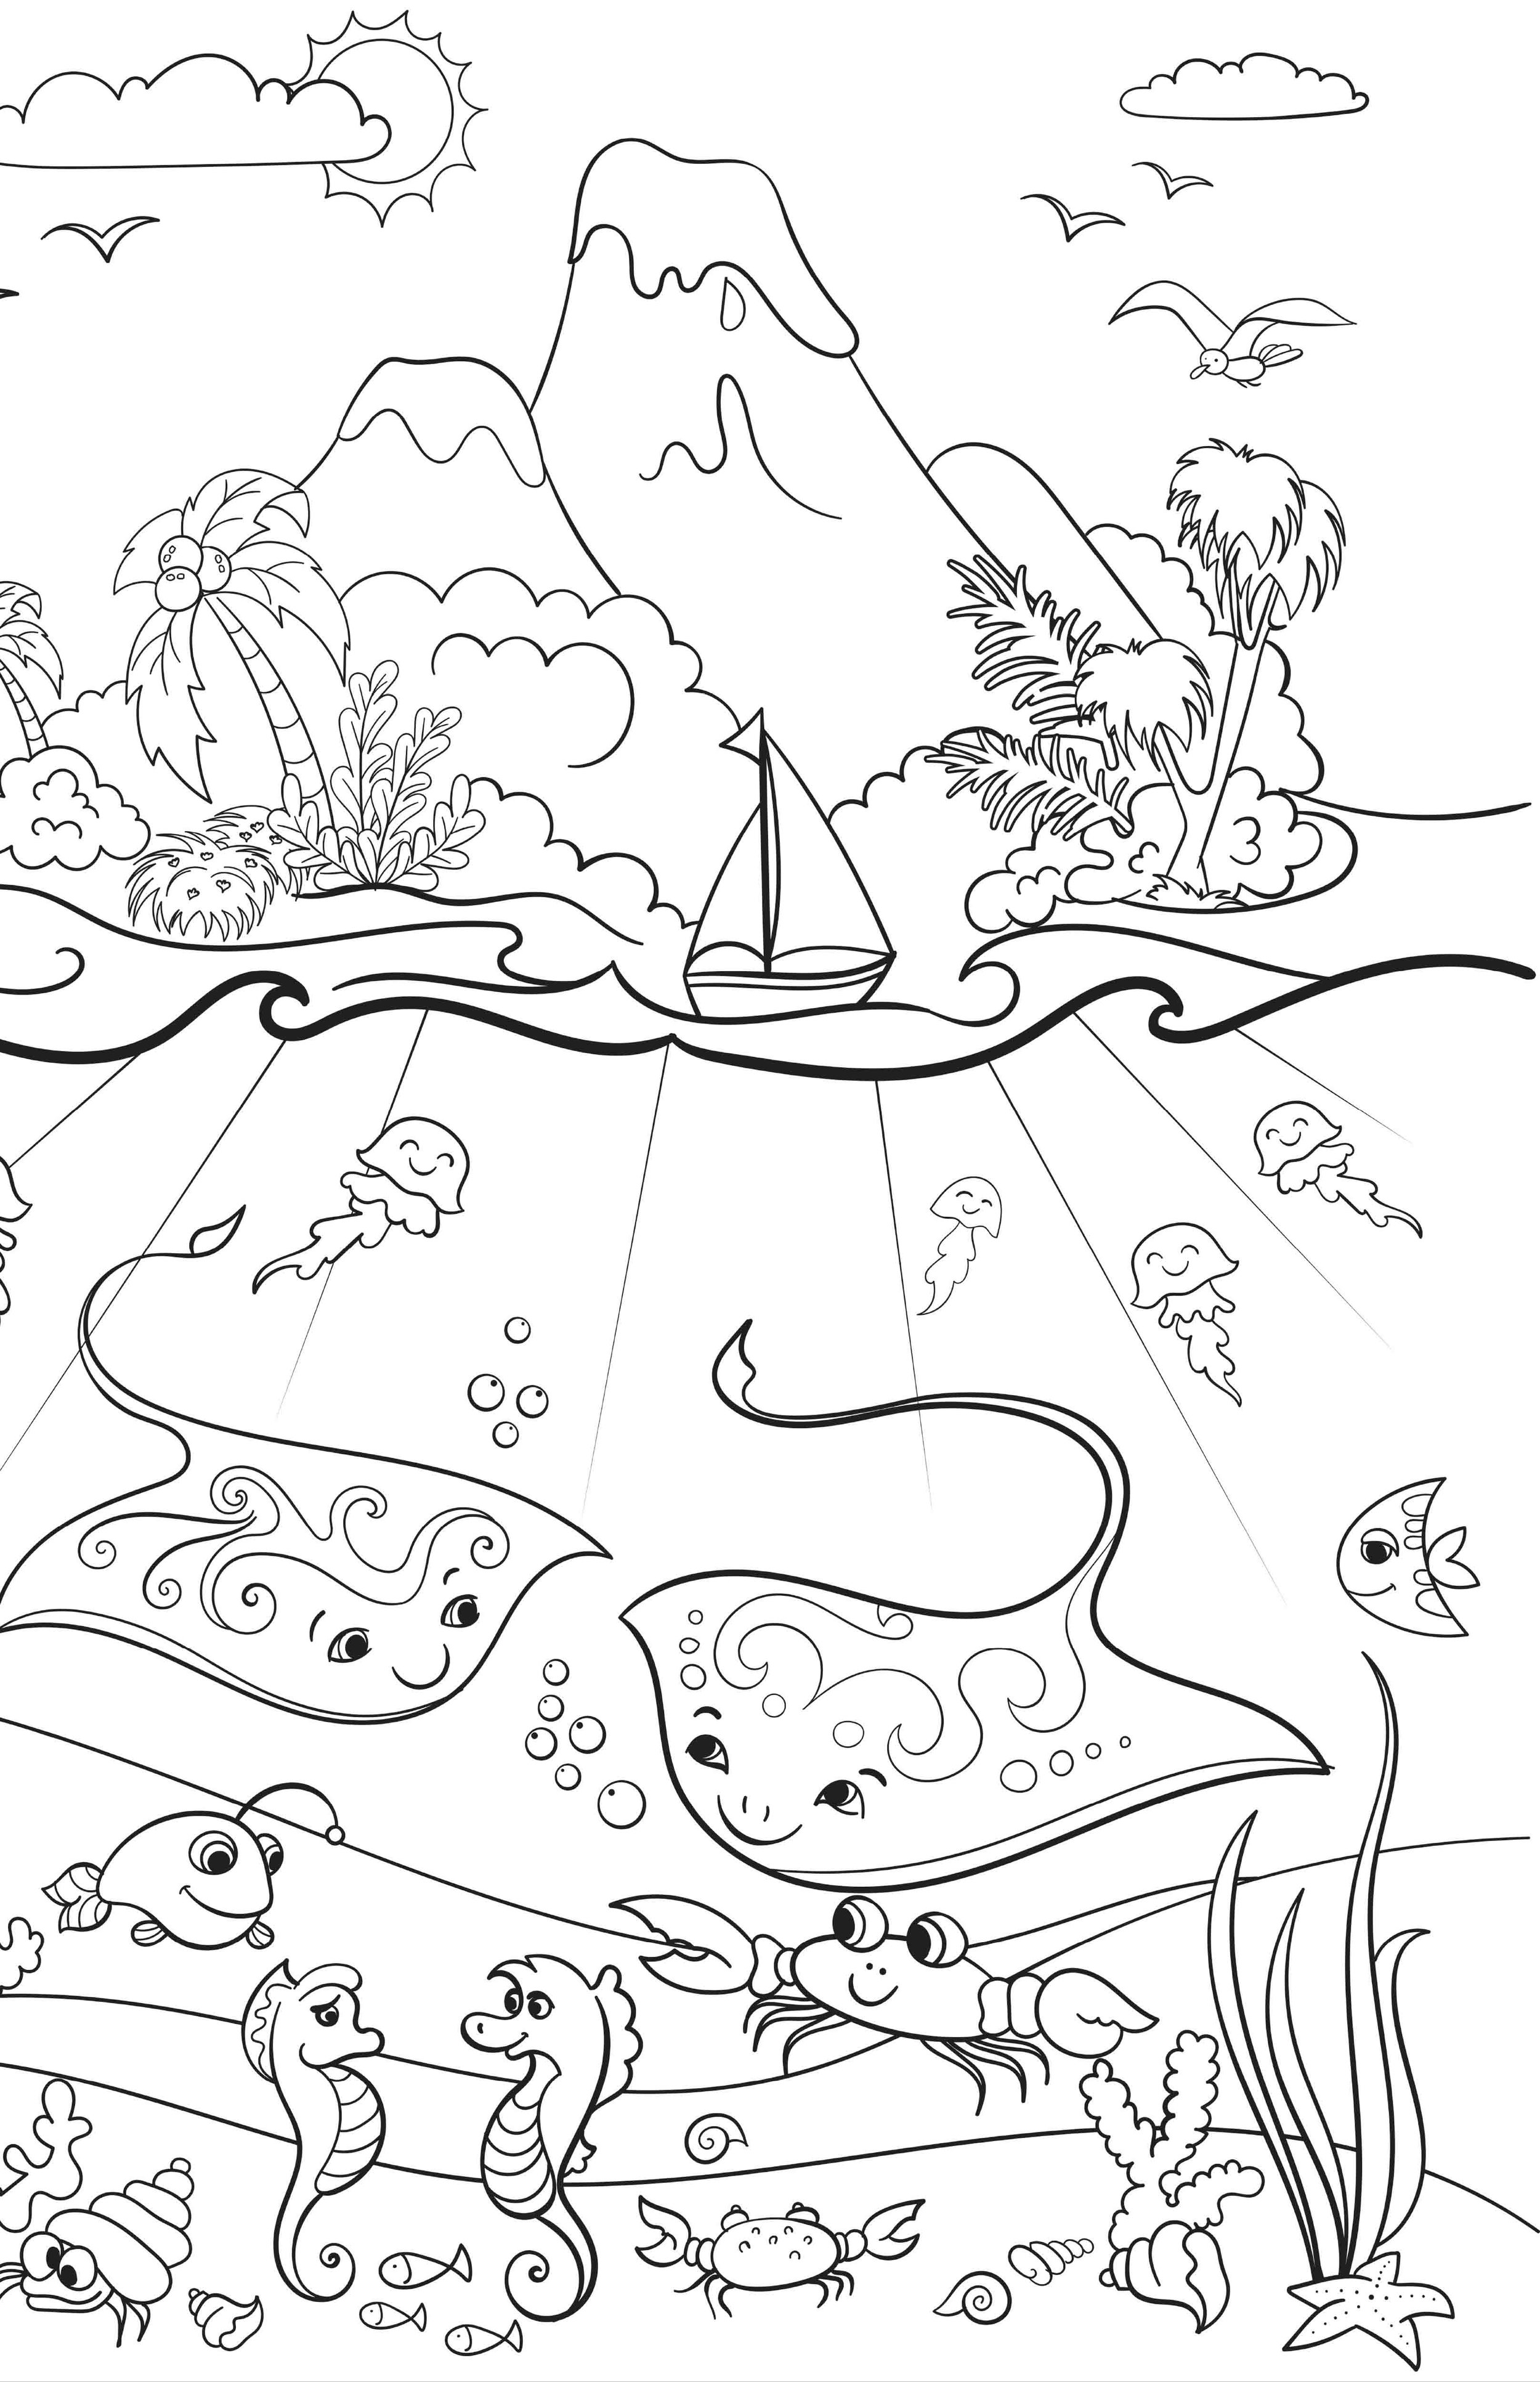 Billy's at the Beach, Newport Beach, California, Kids Coloring Book.jpg